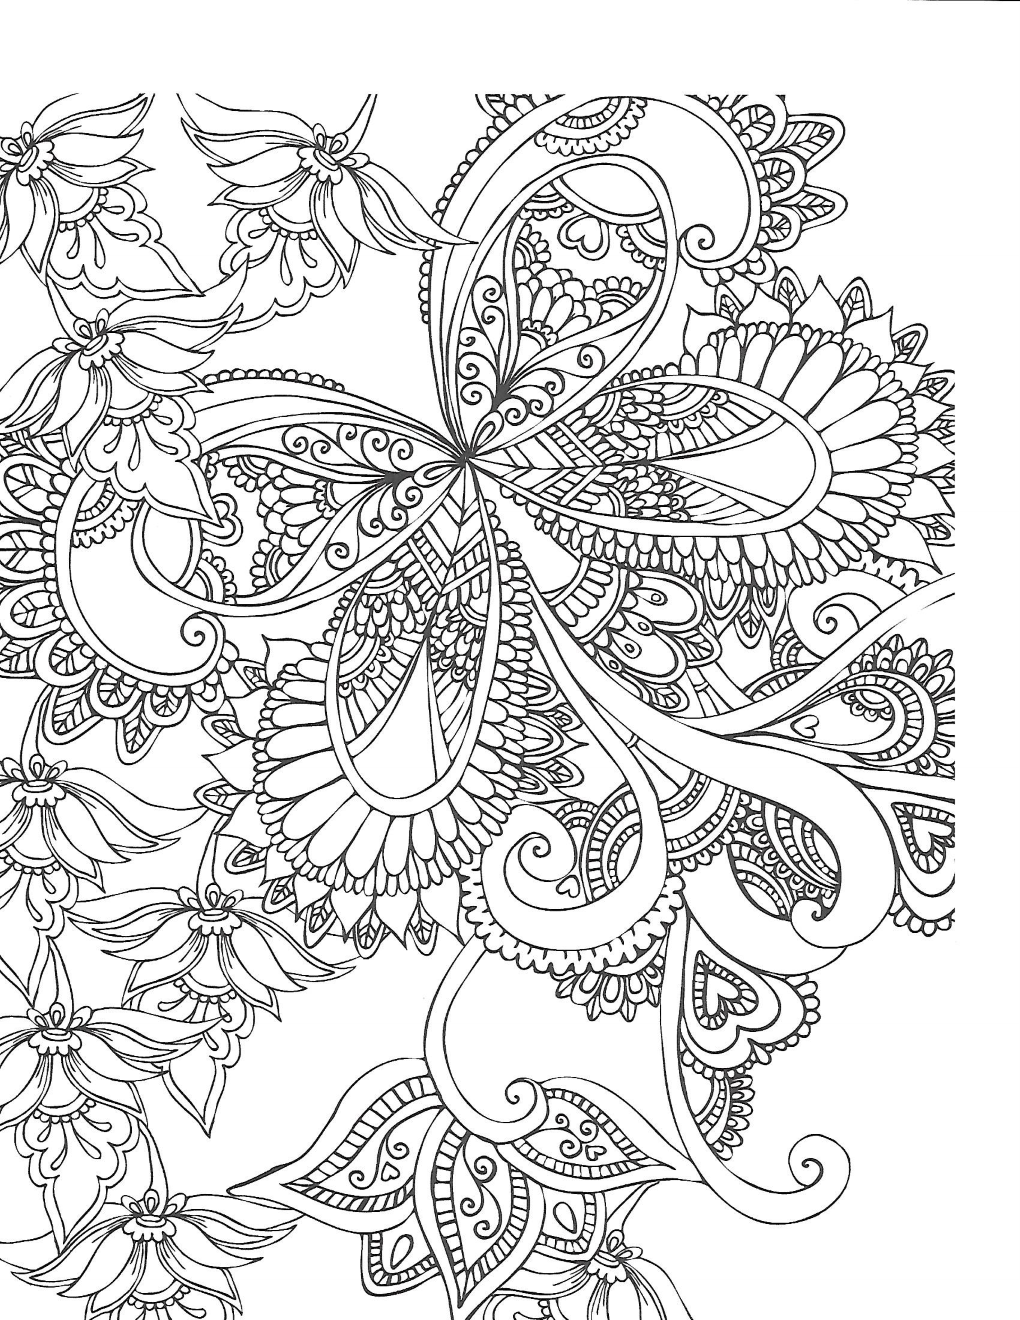 Pin By Faye White On Amy Inspired Color Pages Butterfly Coloring Page Cute Coloring Pages Coloring Pages [ 1320 x 1020 Pixel ]